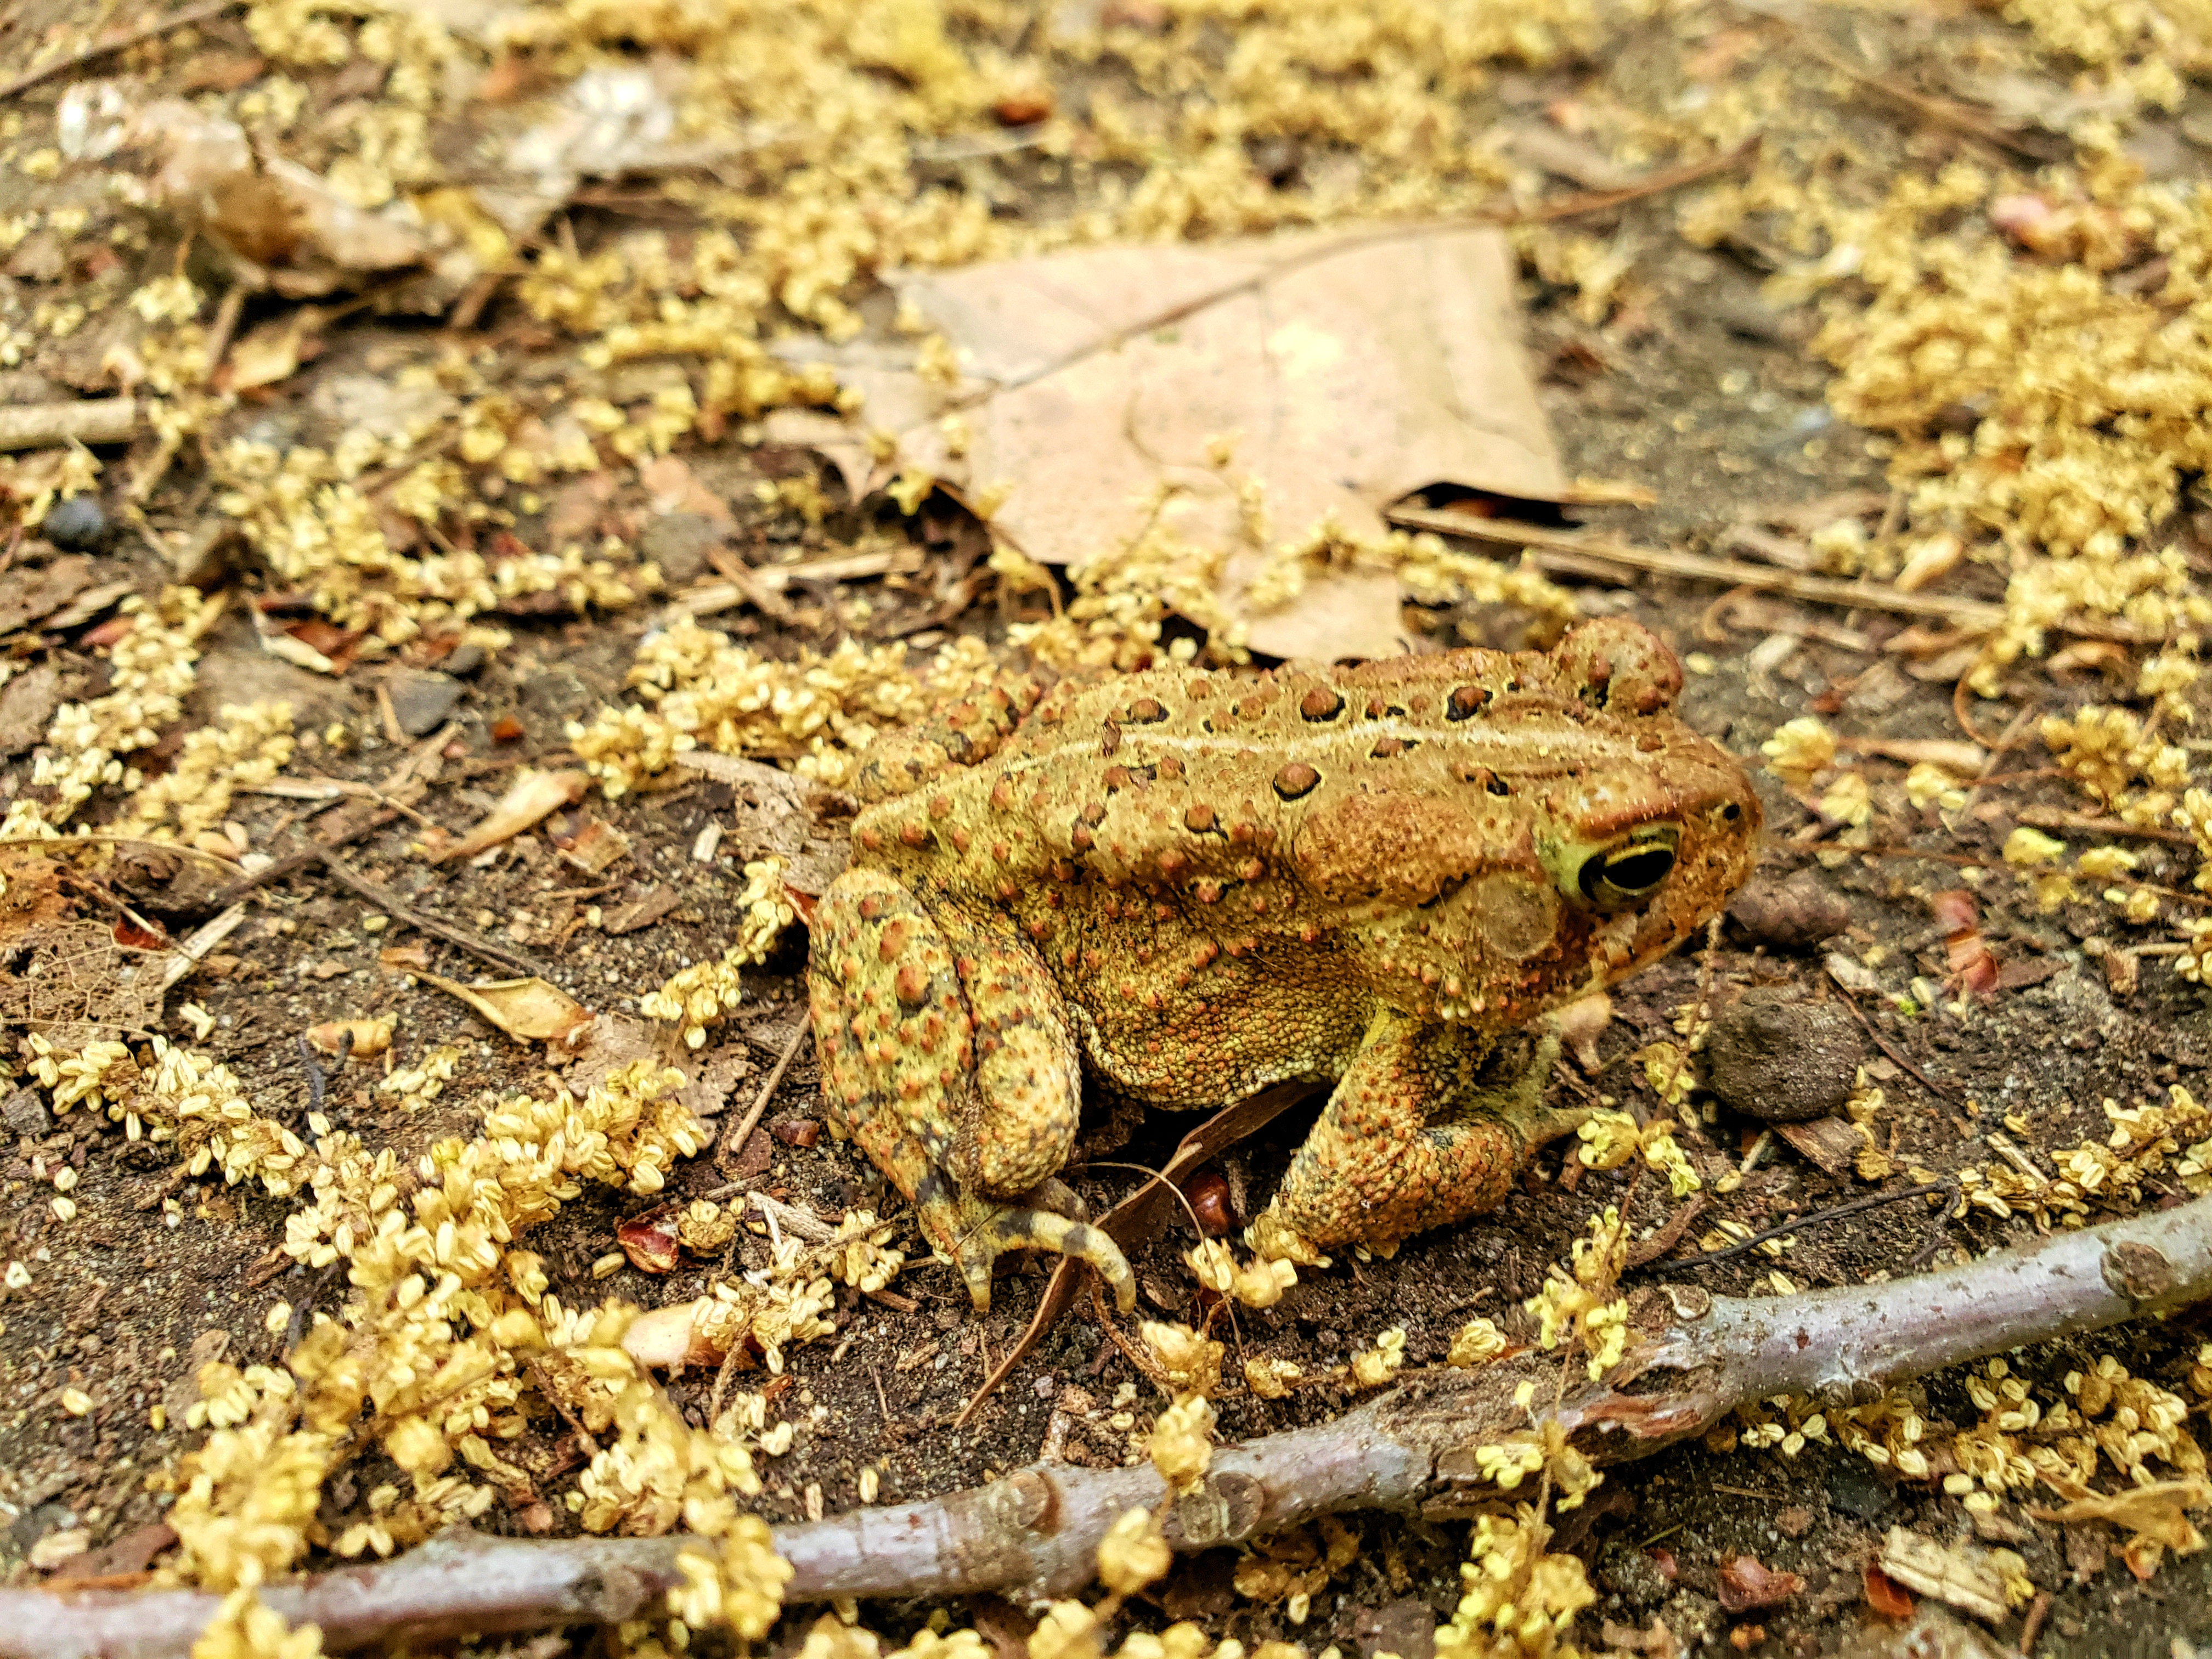 A toad on the forest floor.